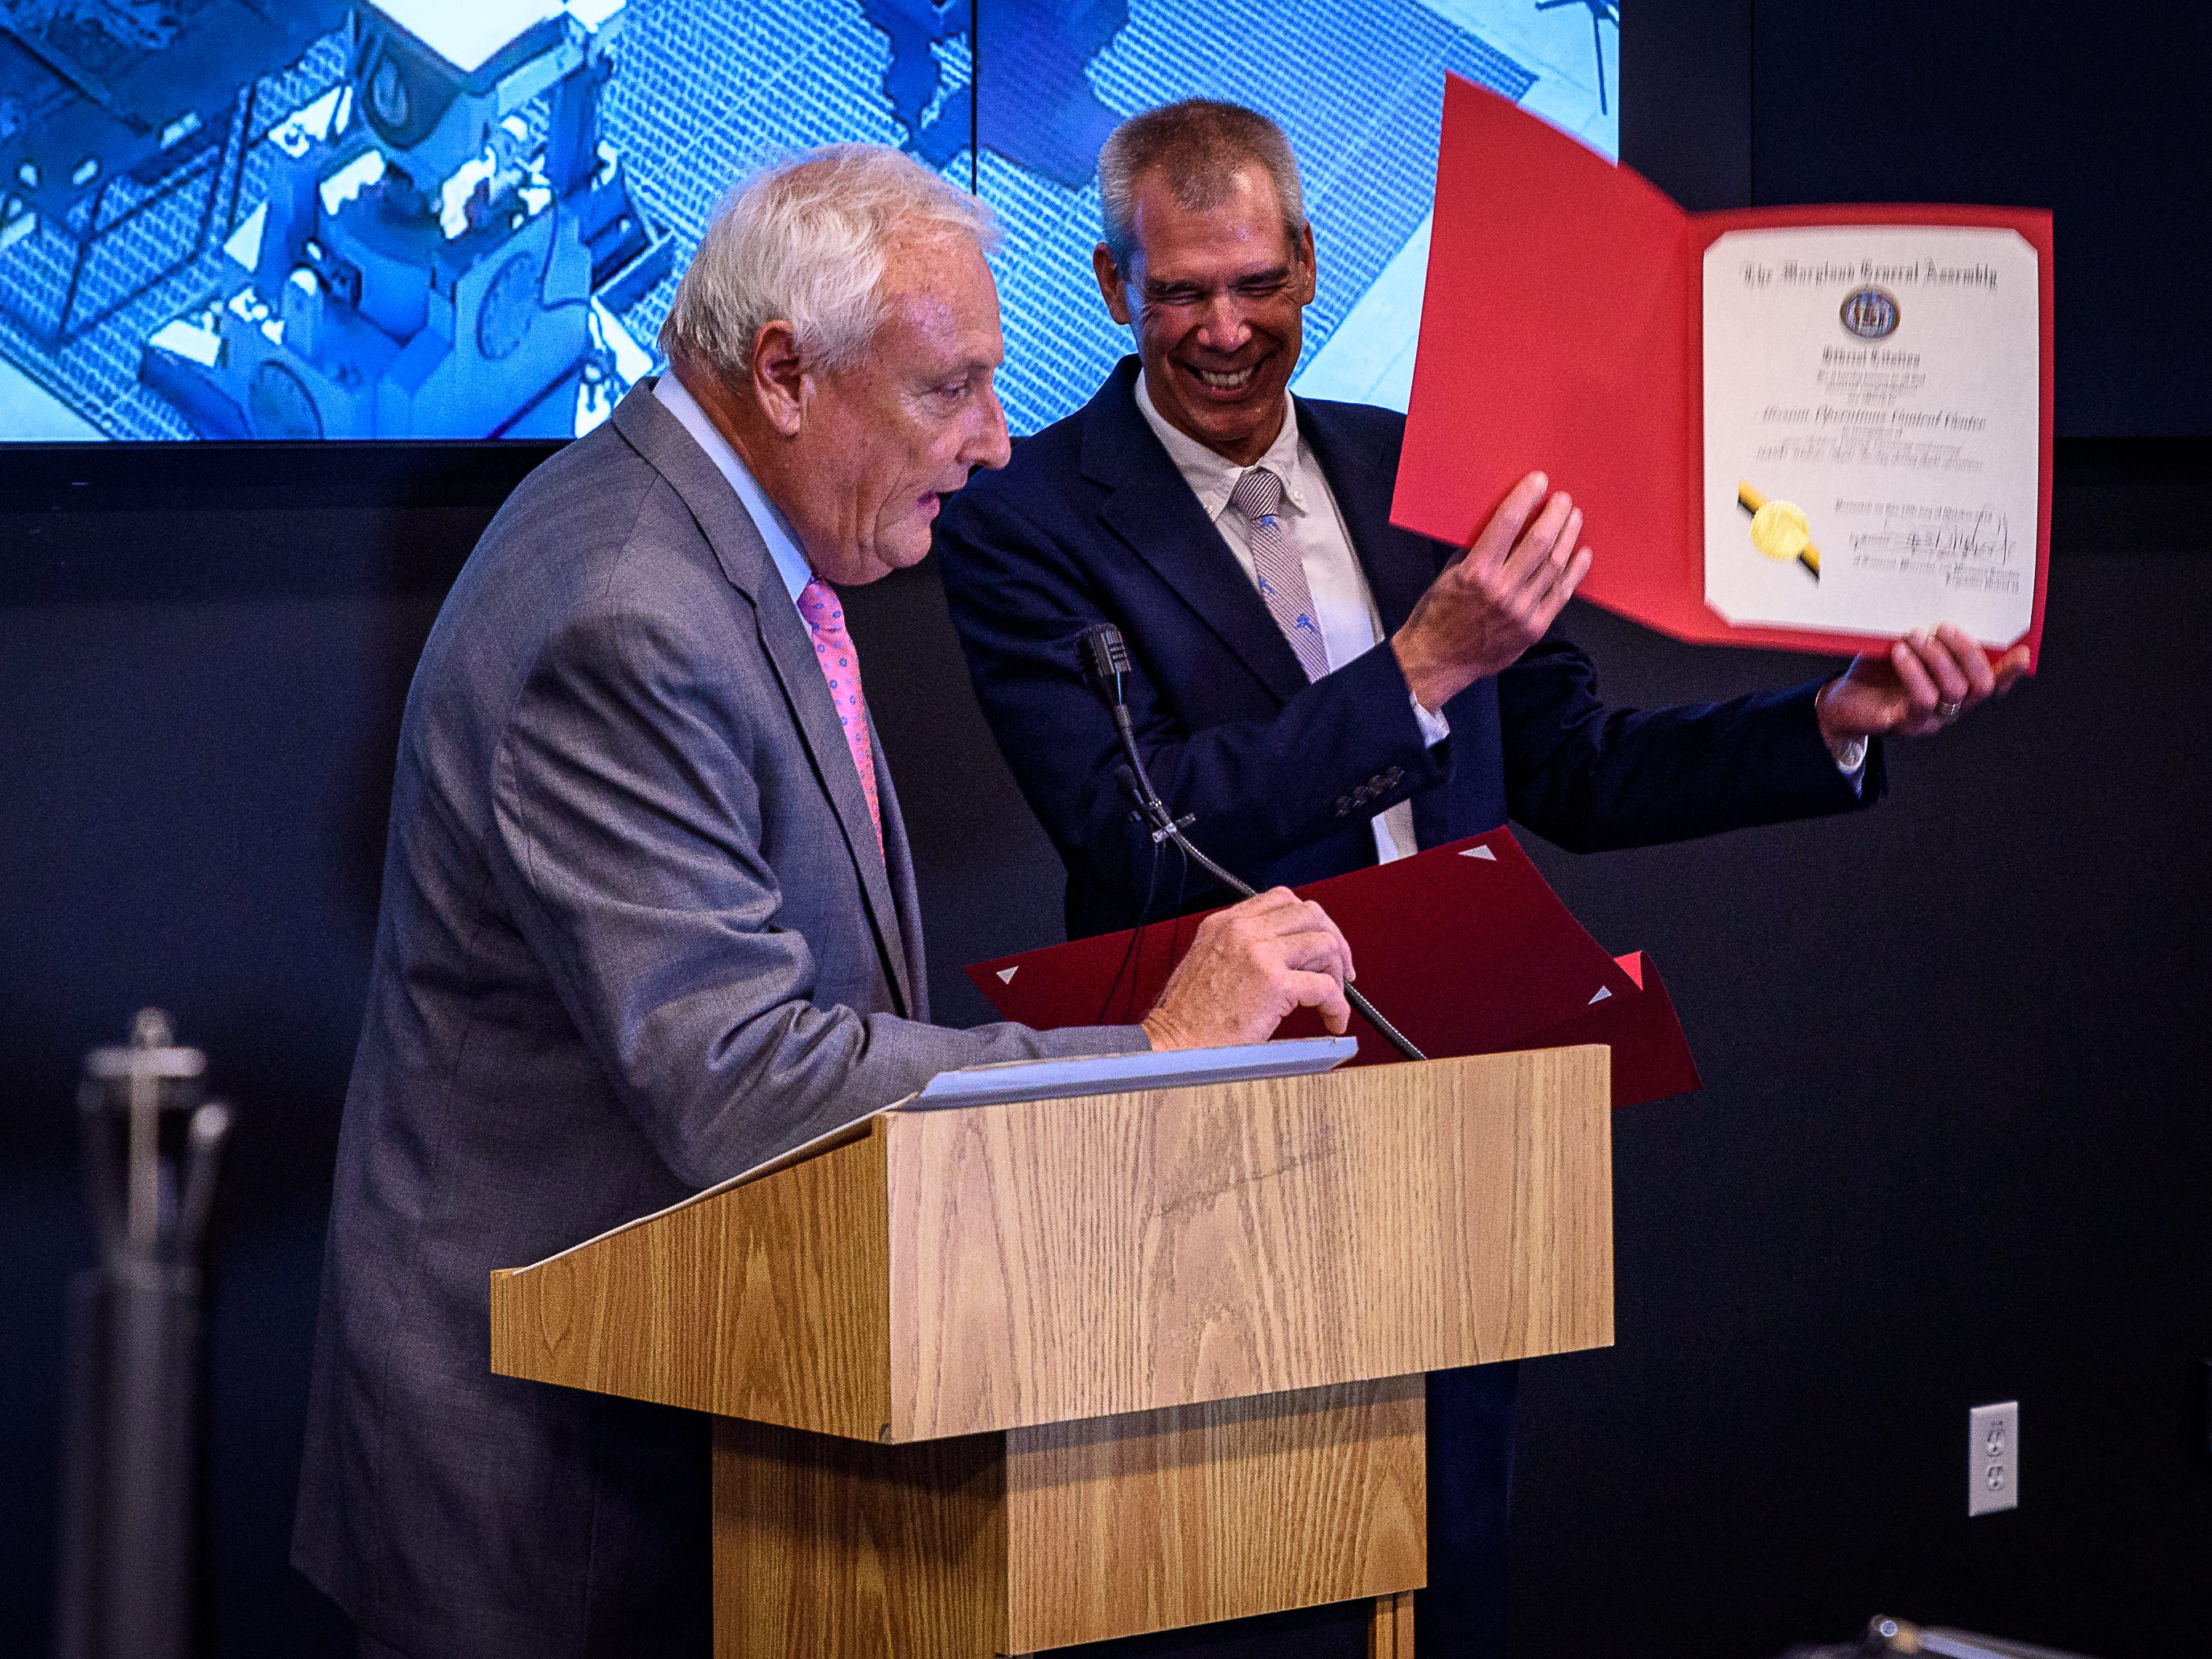 Maryland State Sen. Jim Mathias  presents a proclamation to Bill Wrobel, director of Wallops Flight Facility, at the  ribbon-cutting of the new command center and fire station at Wallops.